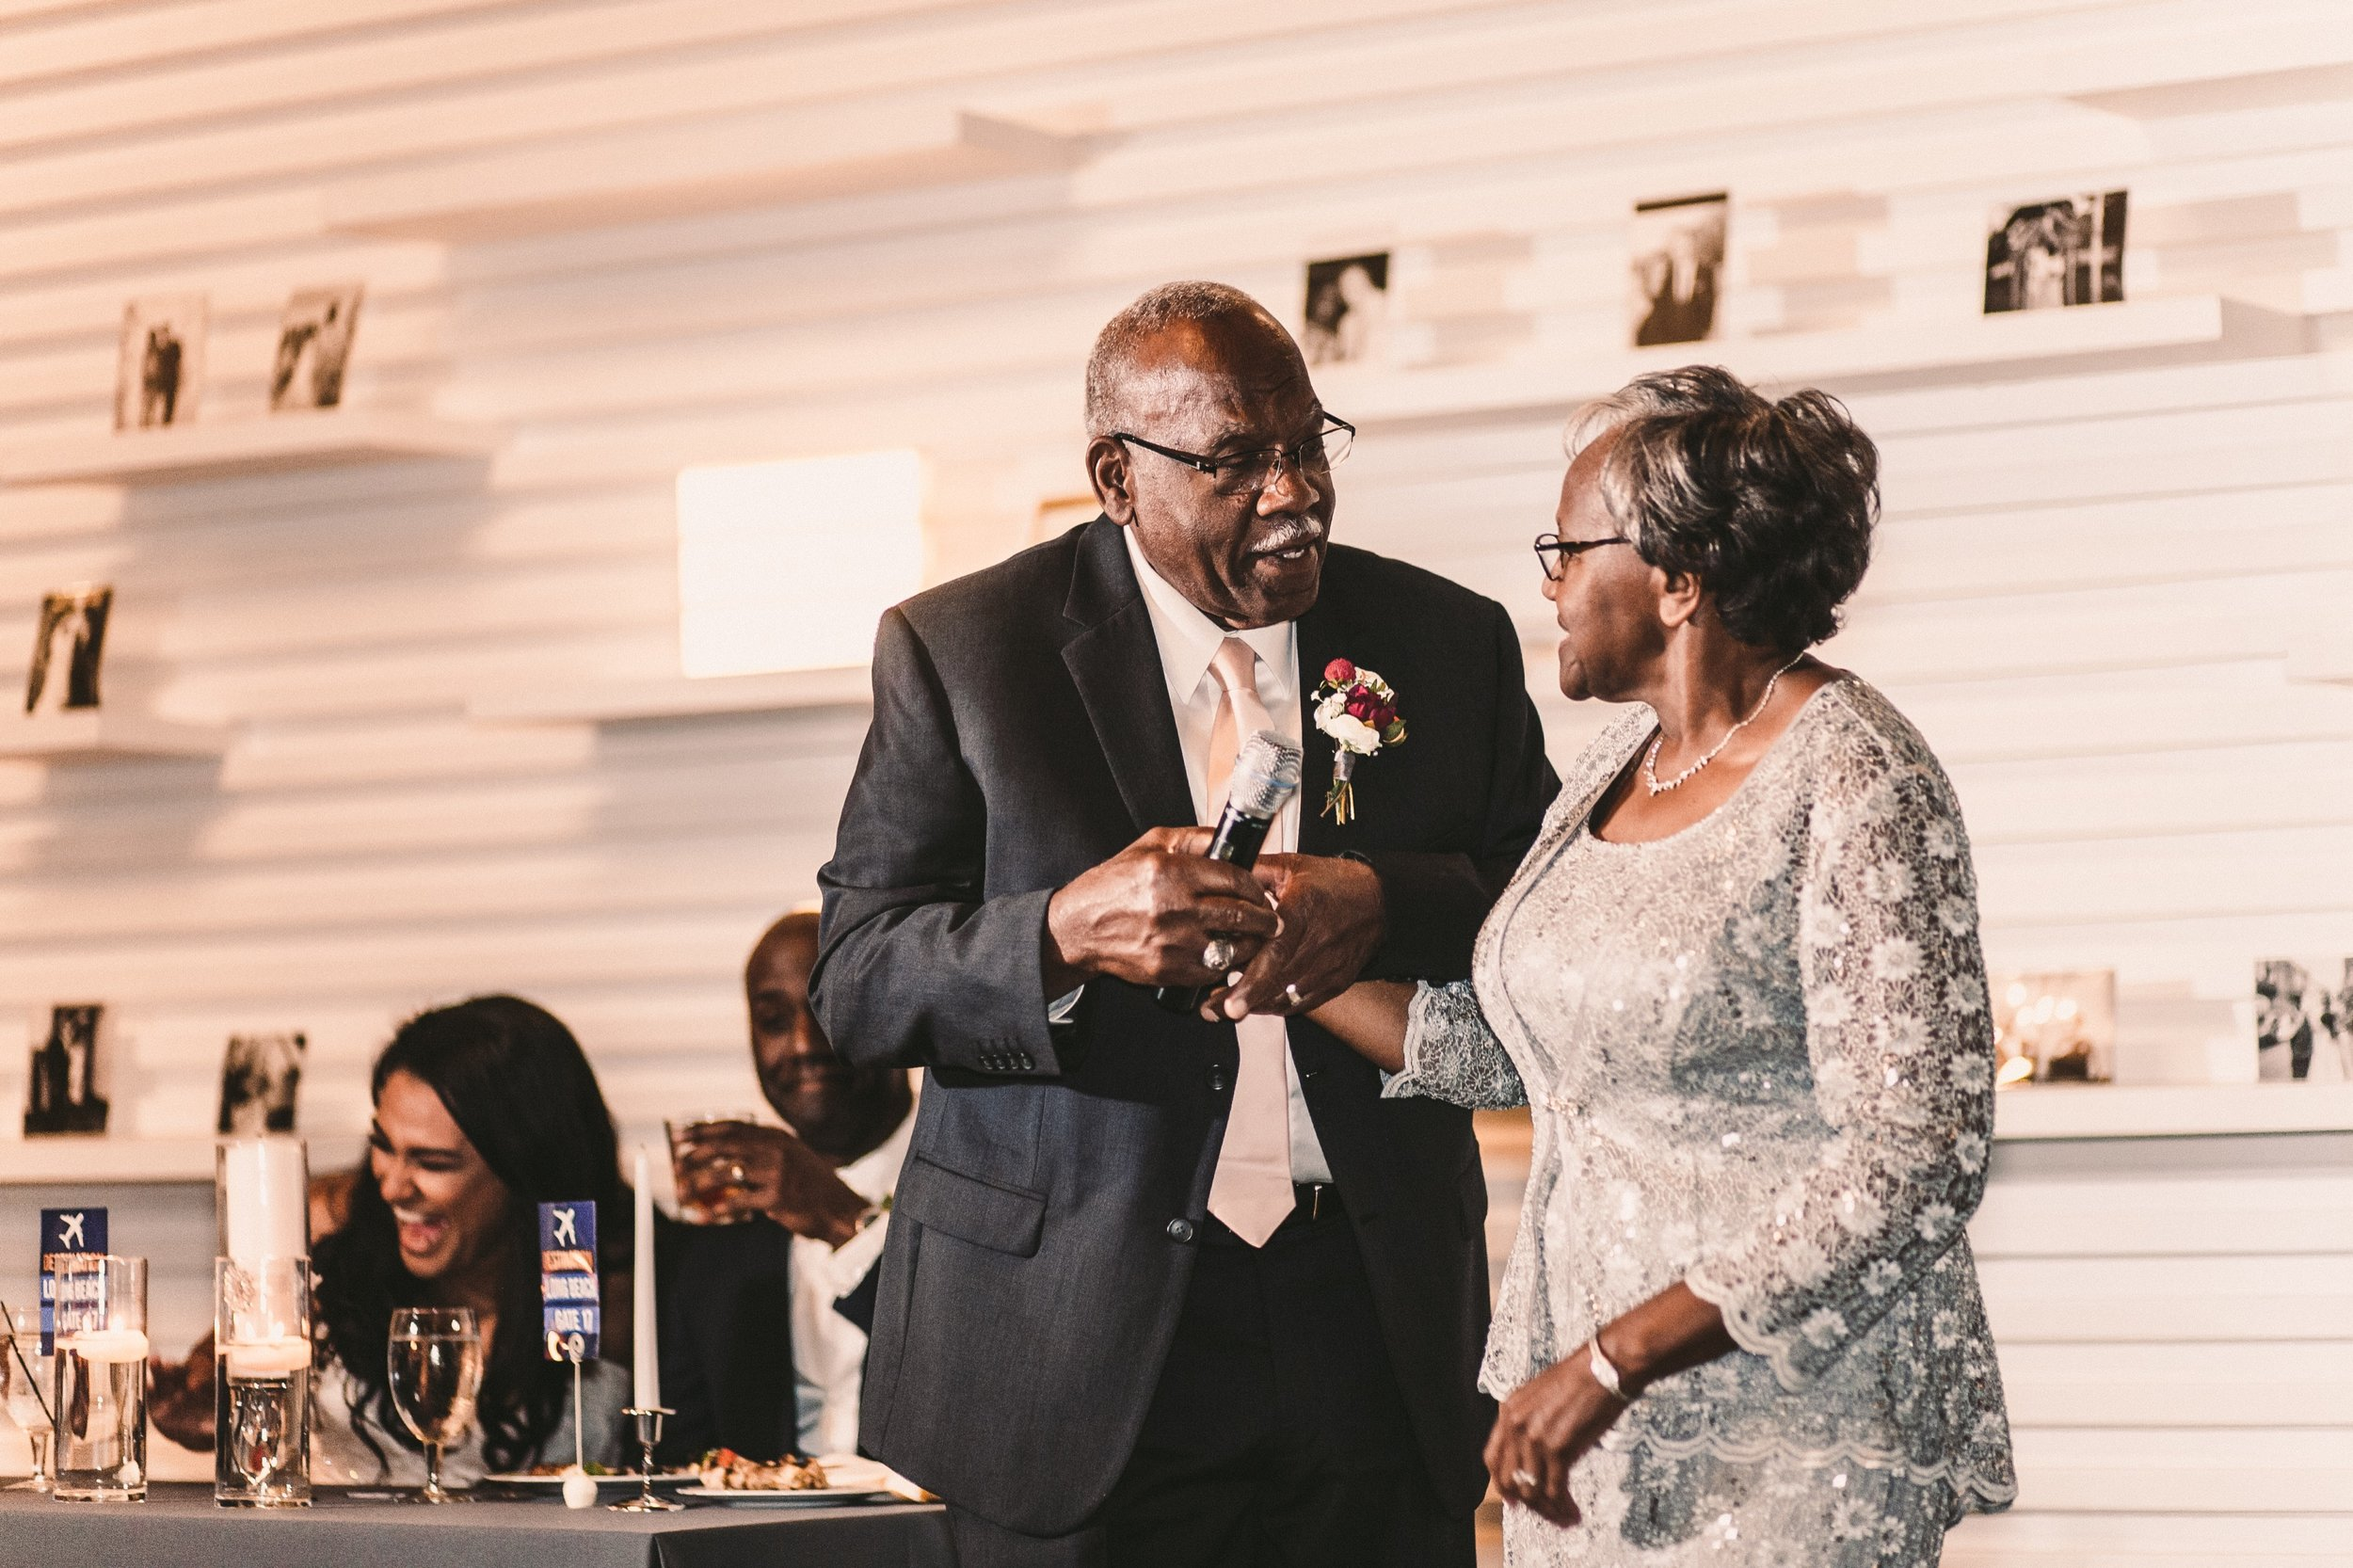 Long Beach Wedding Photography at The Modern-92.jpg